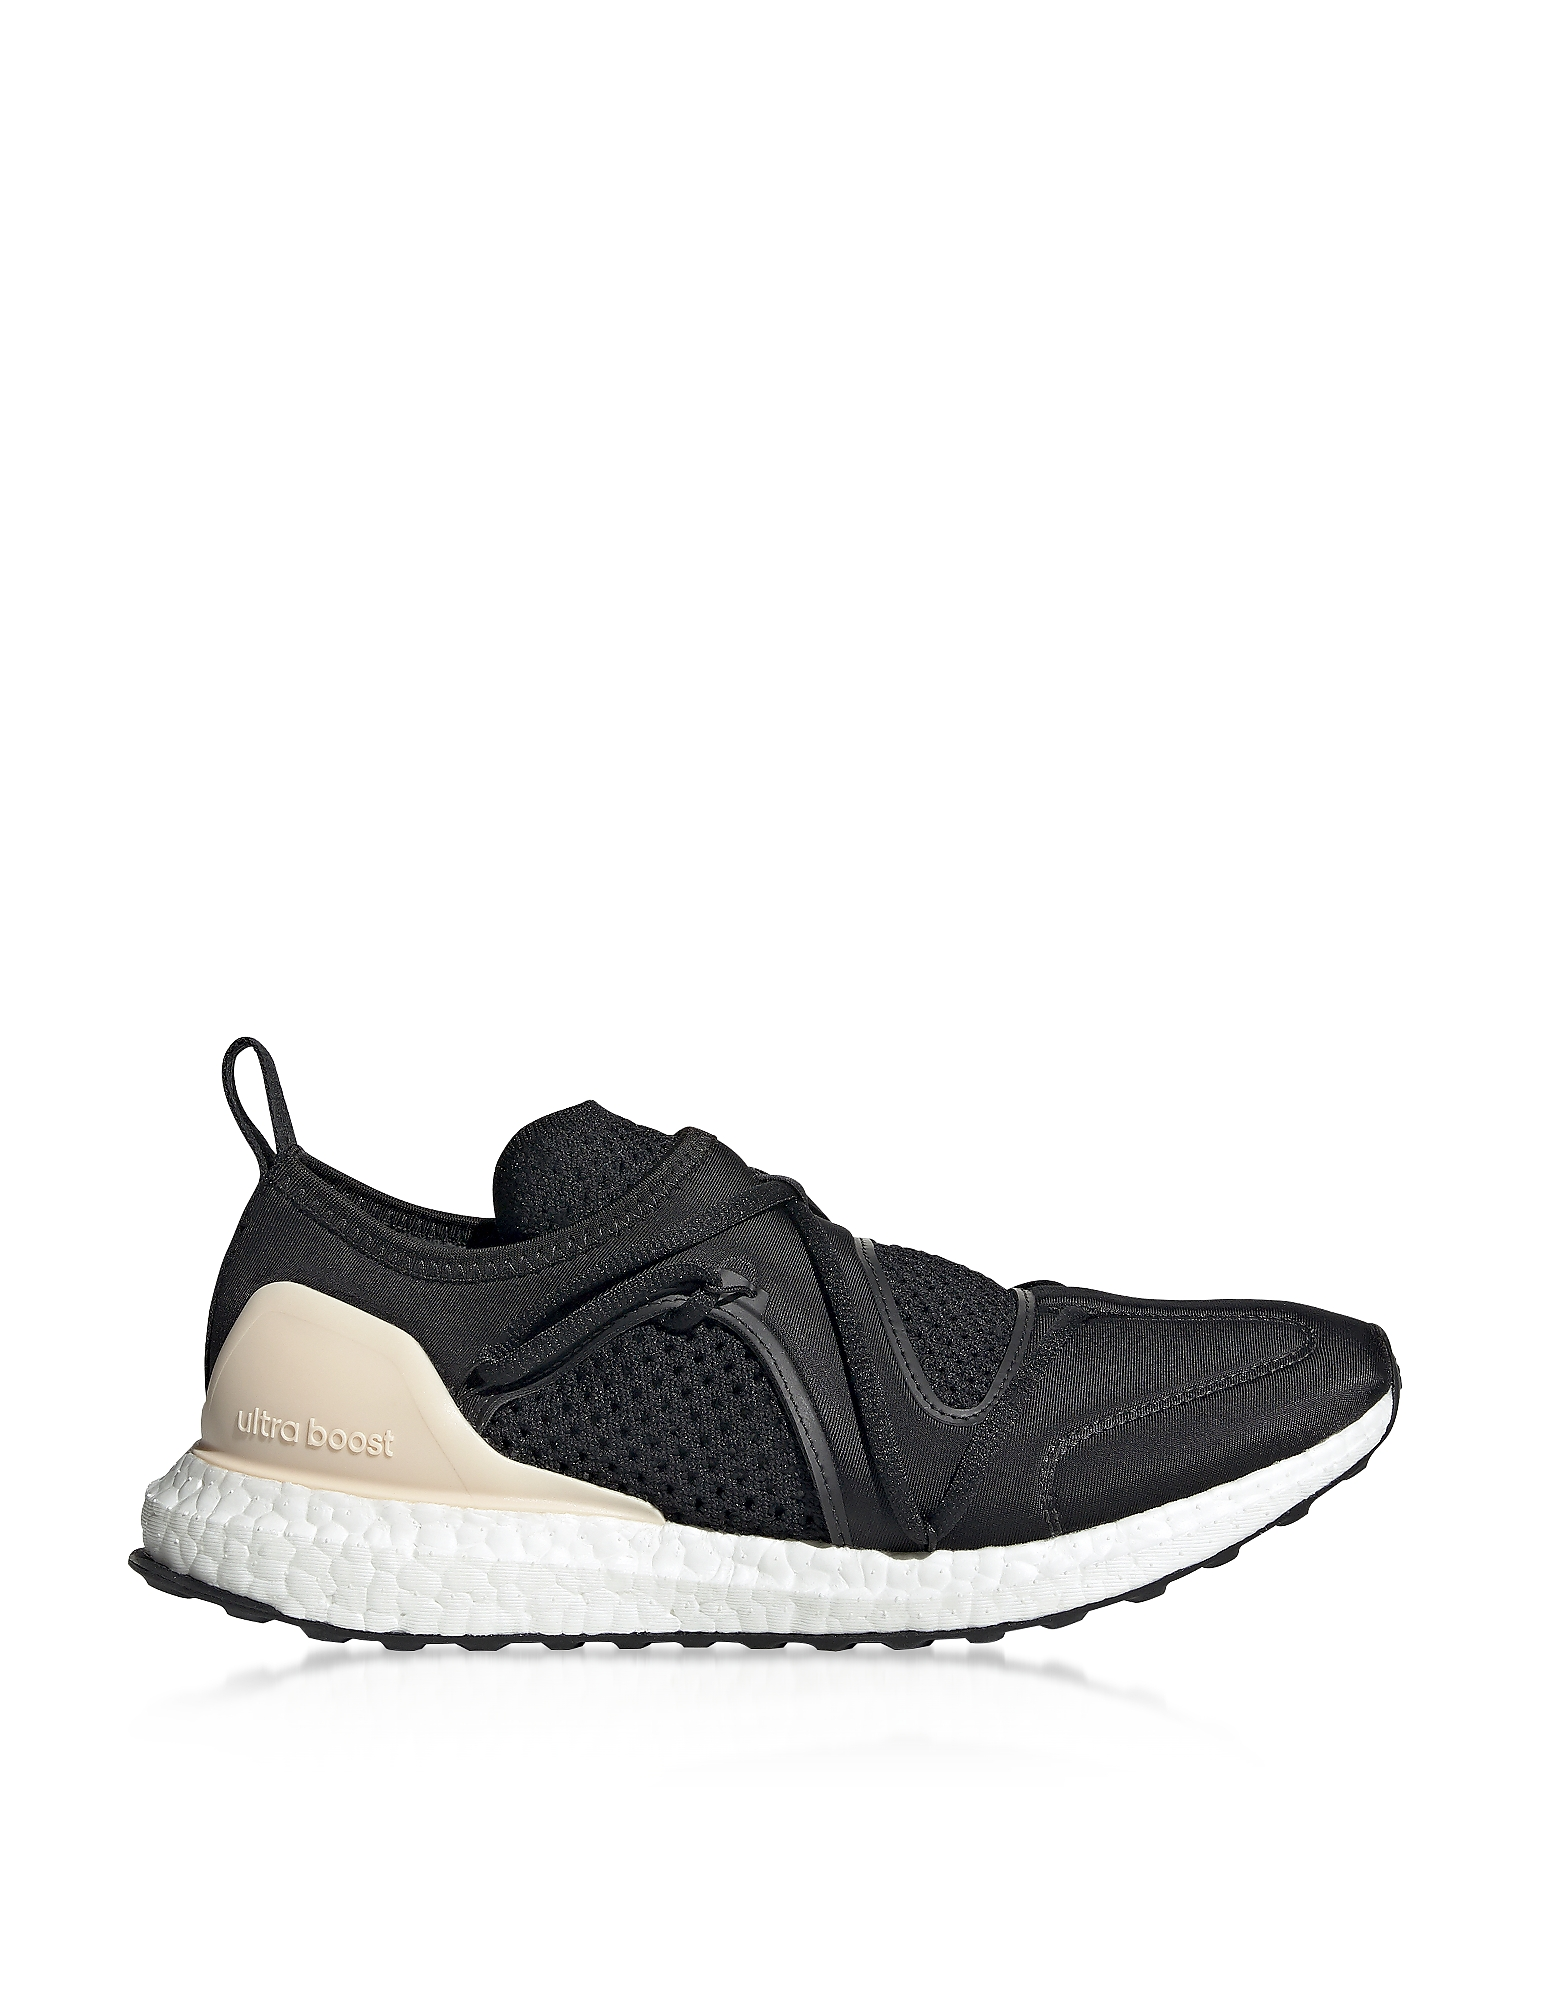 Adidas Stella McCartney Shoes, Ultraboost T Black Nylon Running Sneakers